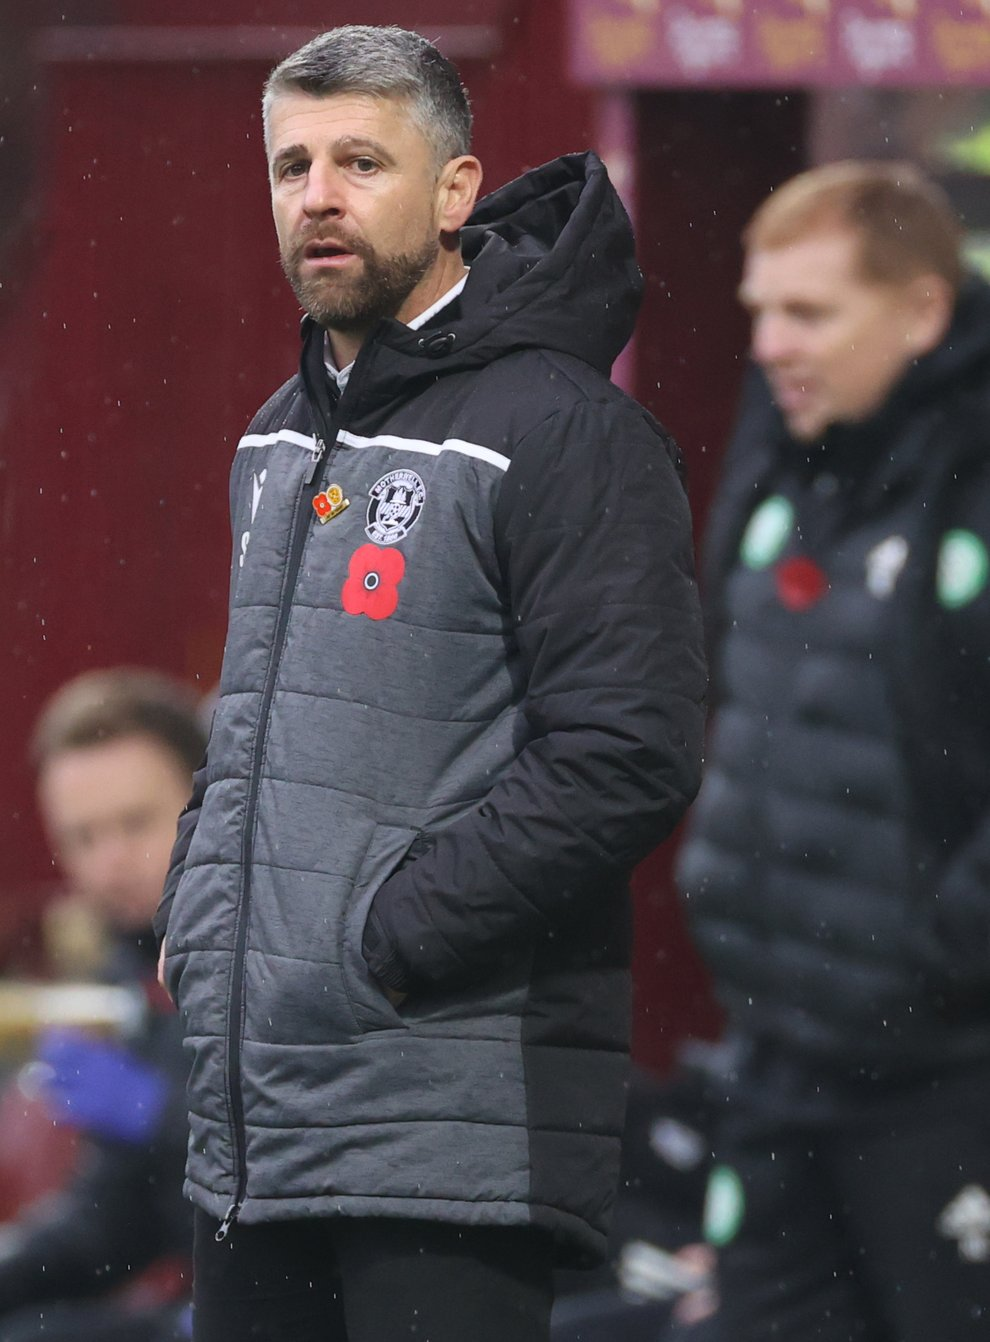 Stephen Robinson is the new manager of Morecambe